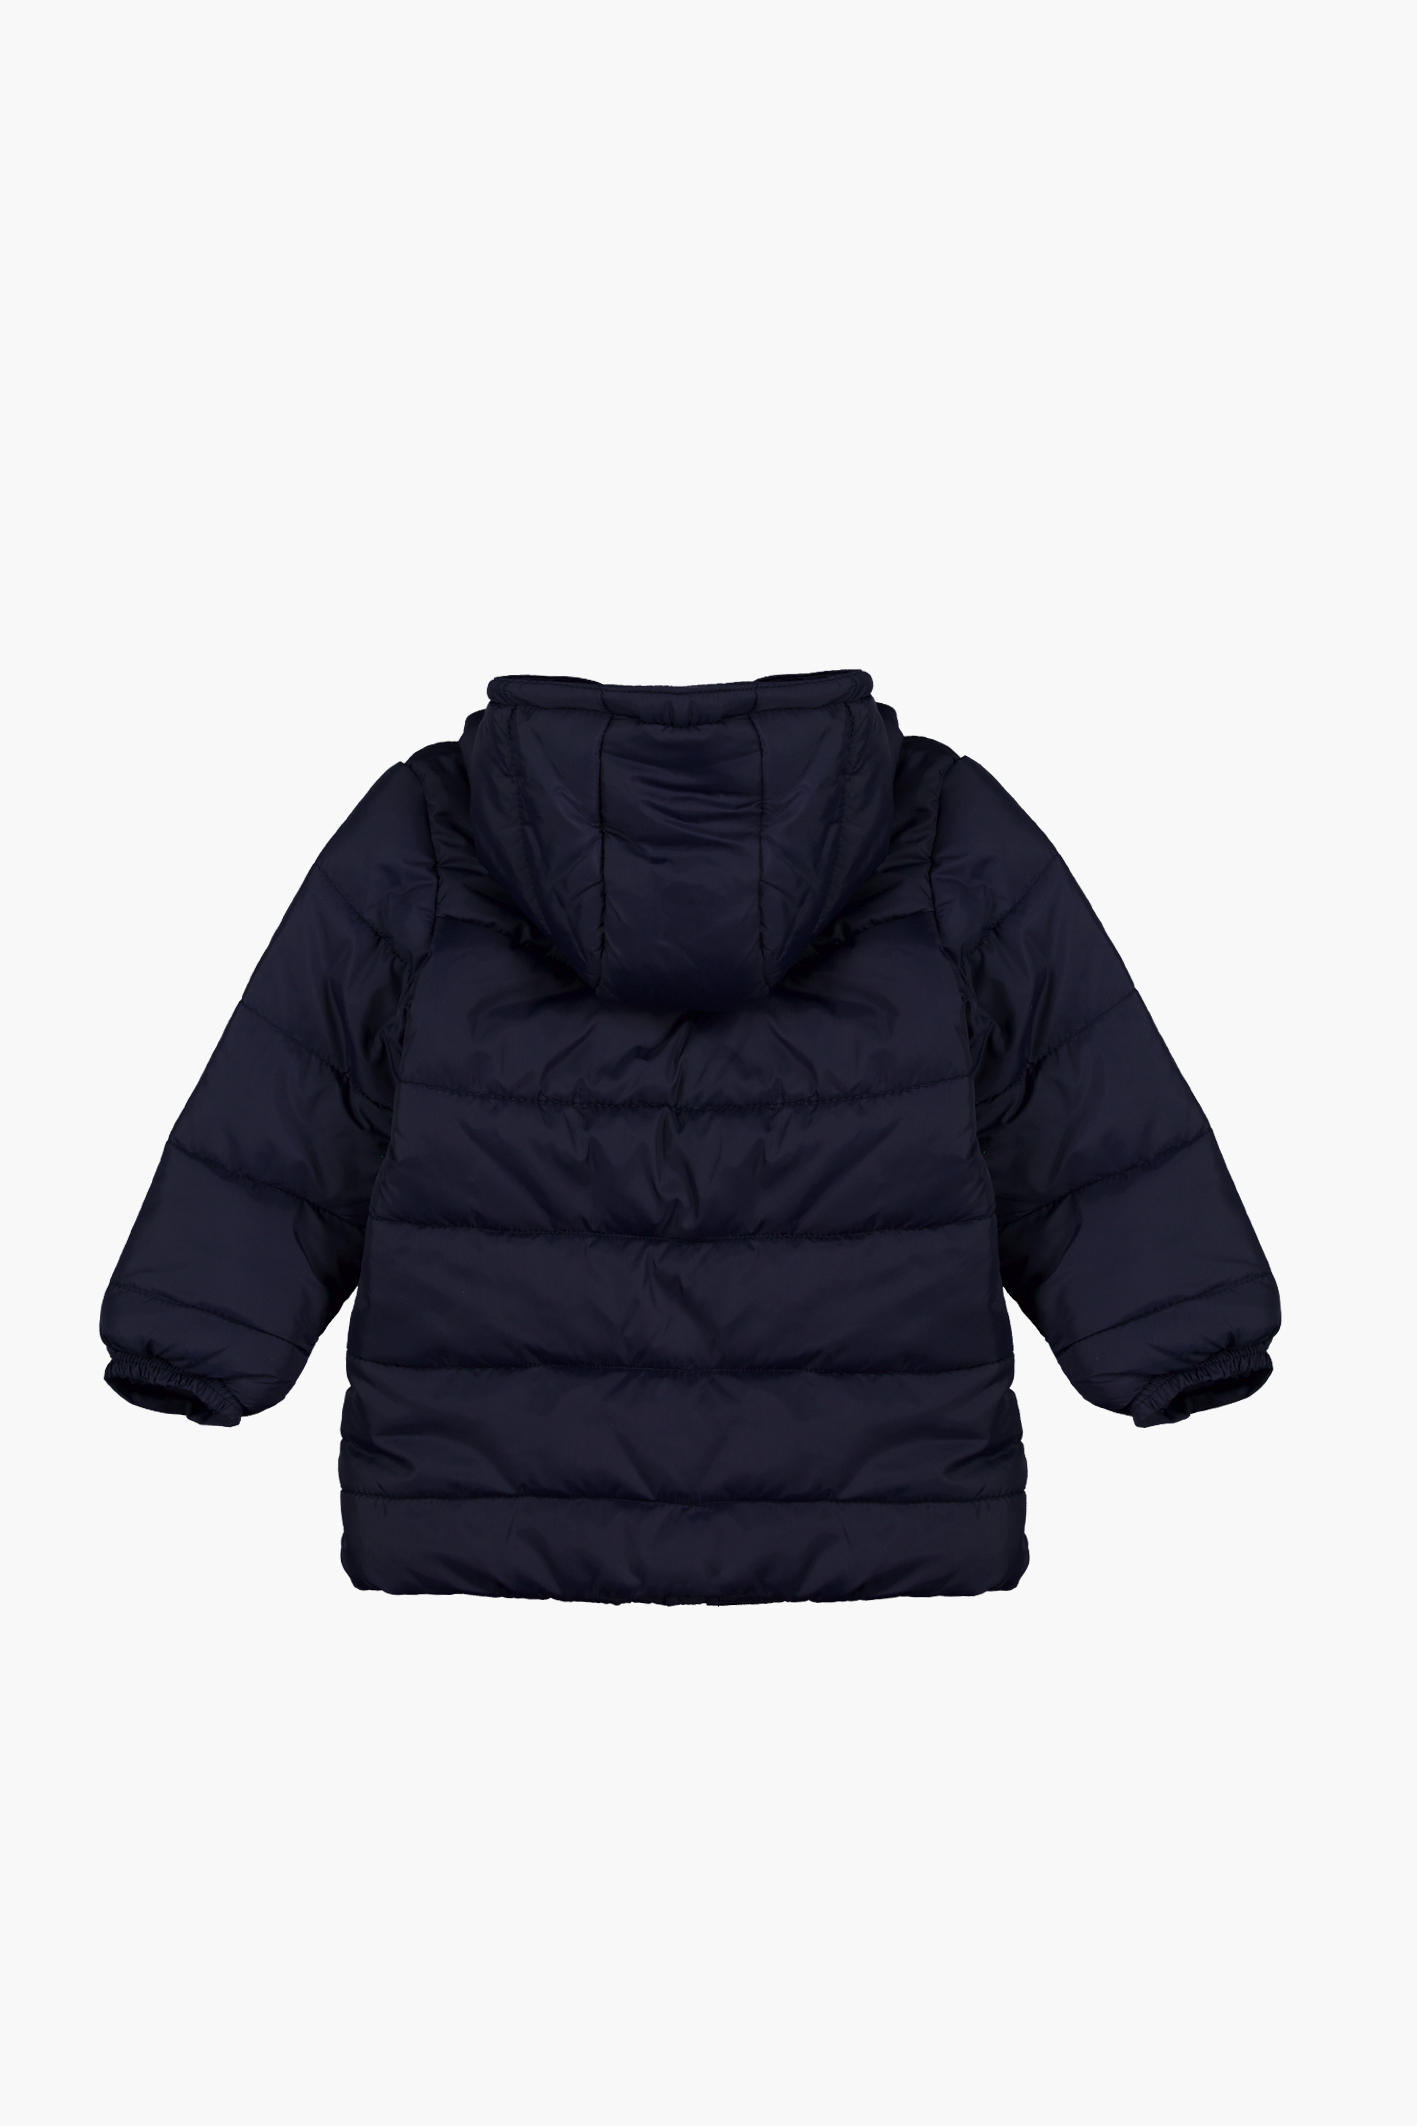 cheeky_campera-new-basic-kids-2-14_22-25-2020__picture-51537